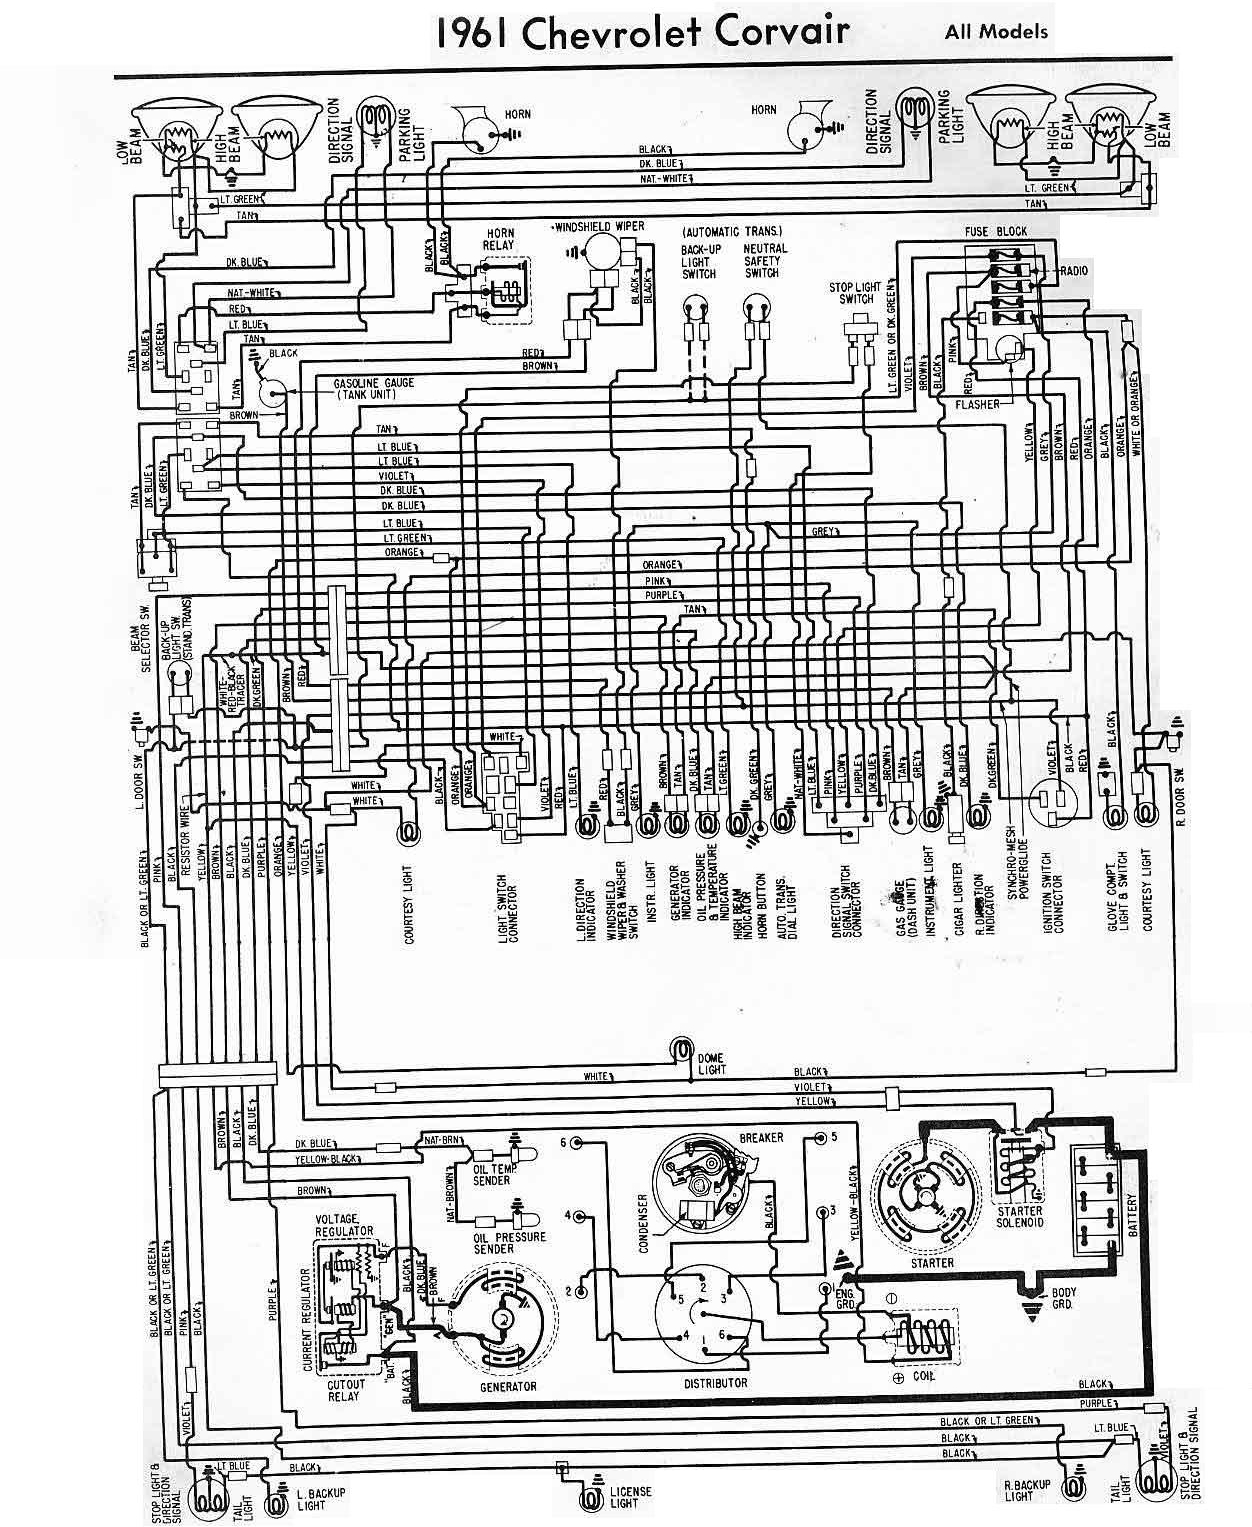 63 chevy truck wiring diagram 15 pin vga connector electrical diagrams for boats get free